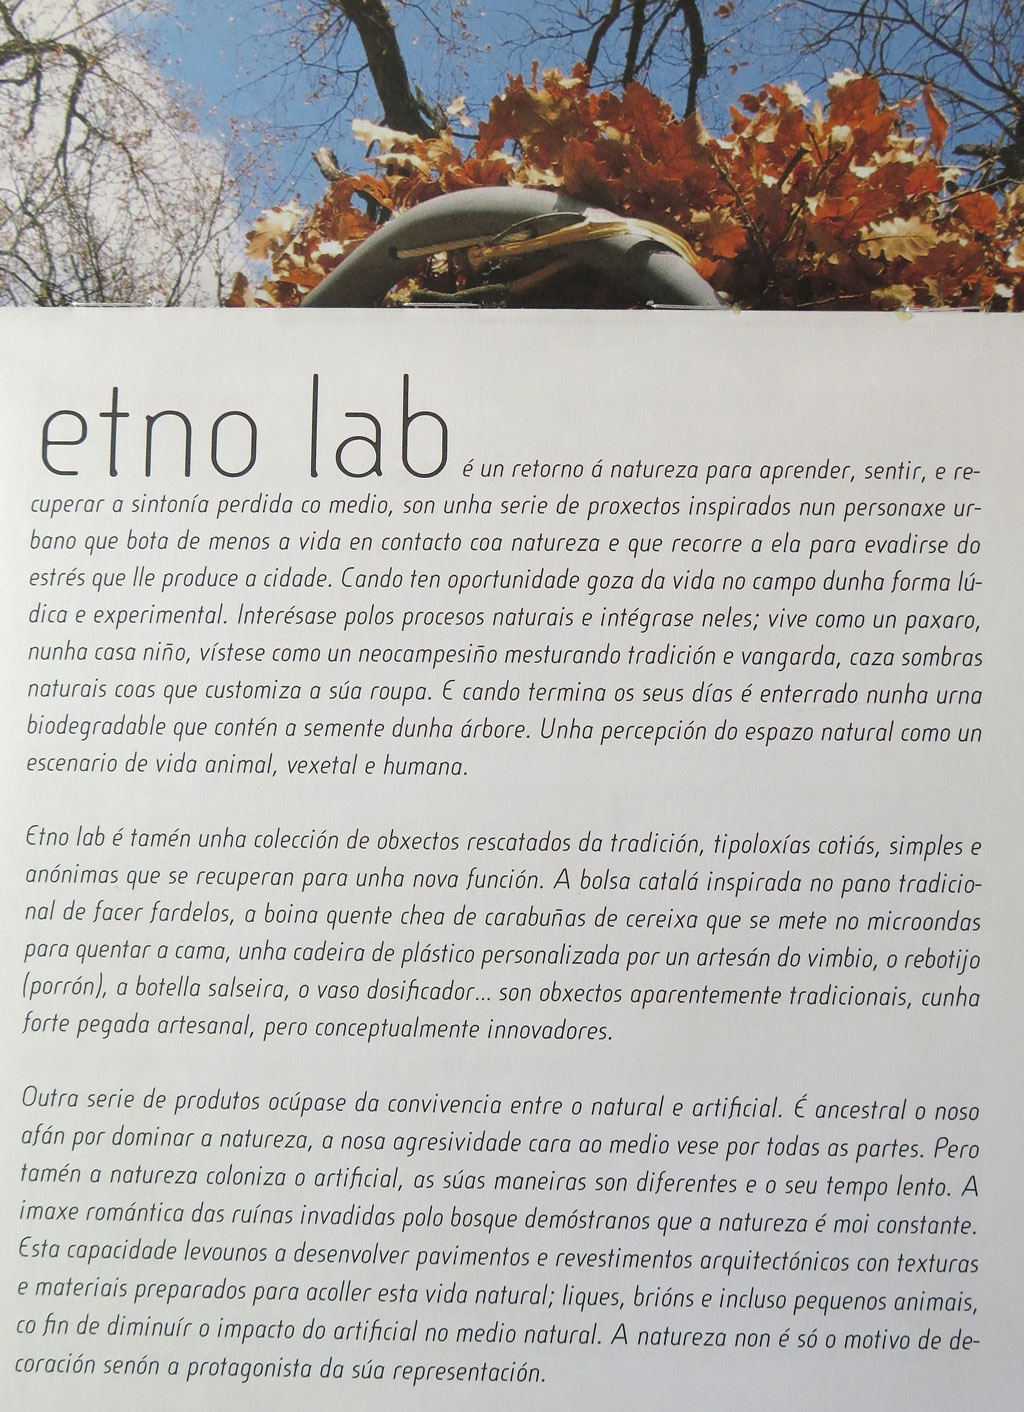 press-martin-azua-etno-lab-05